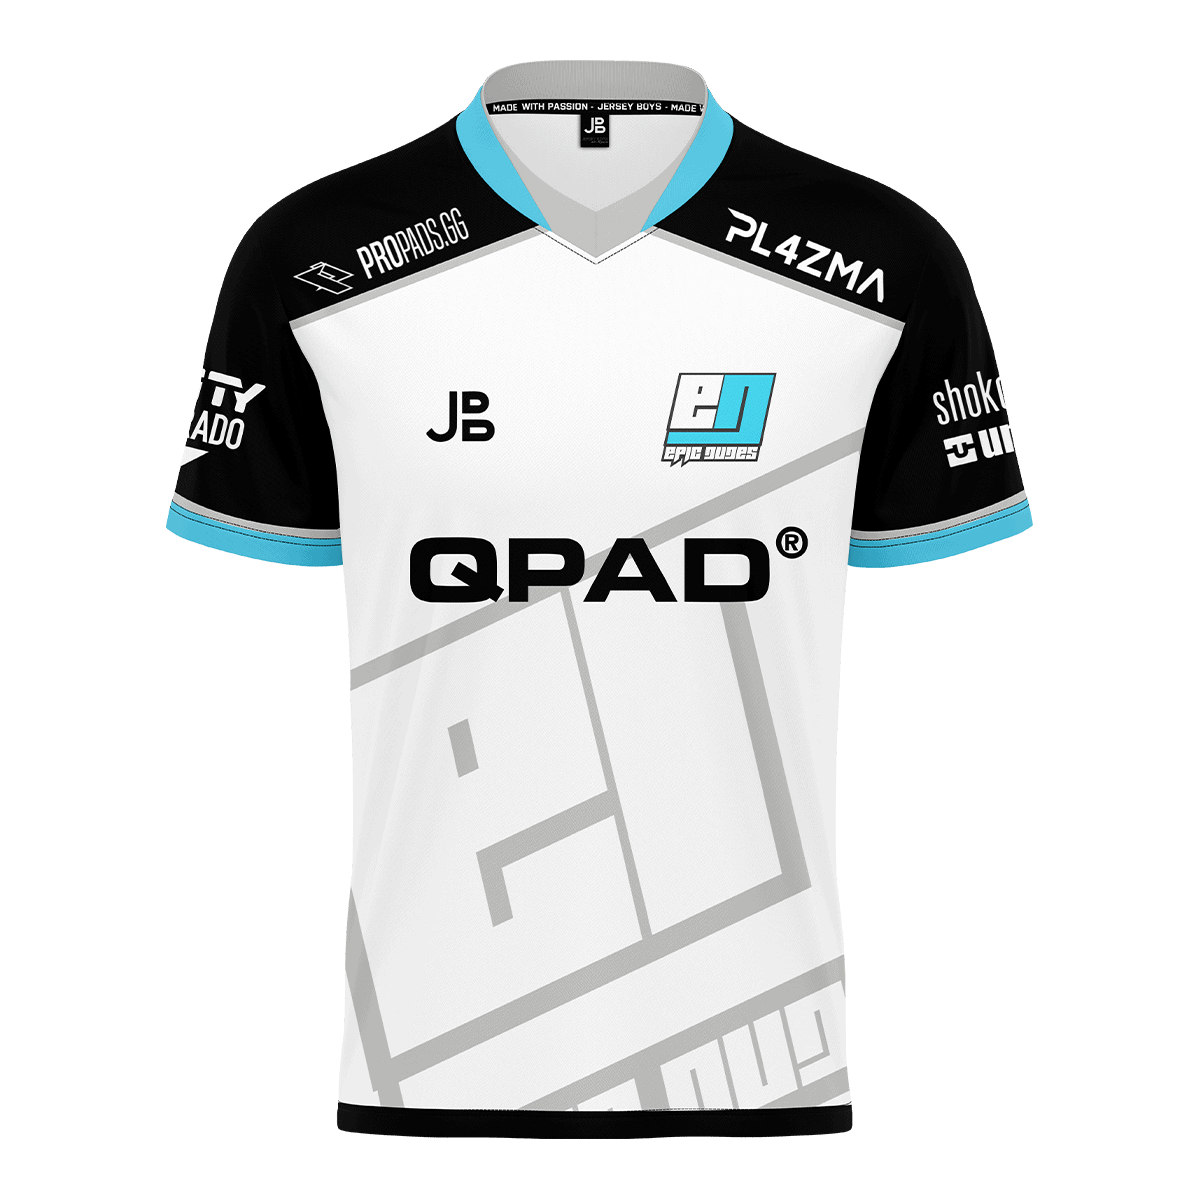 Jersey 2021 white